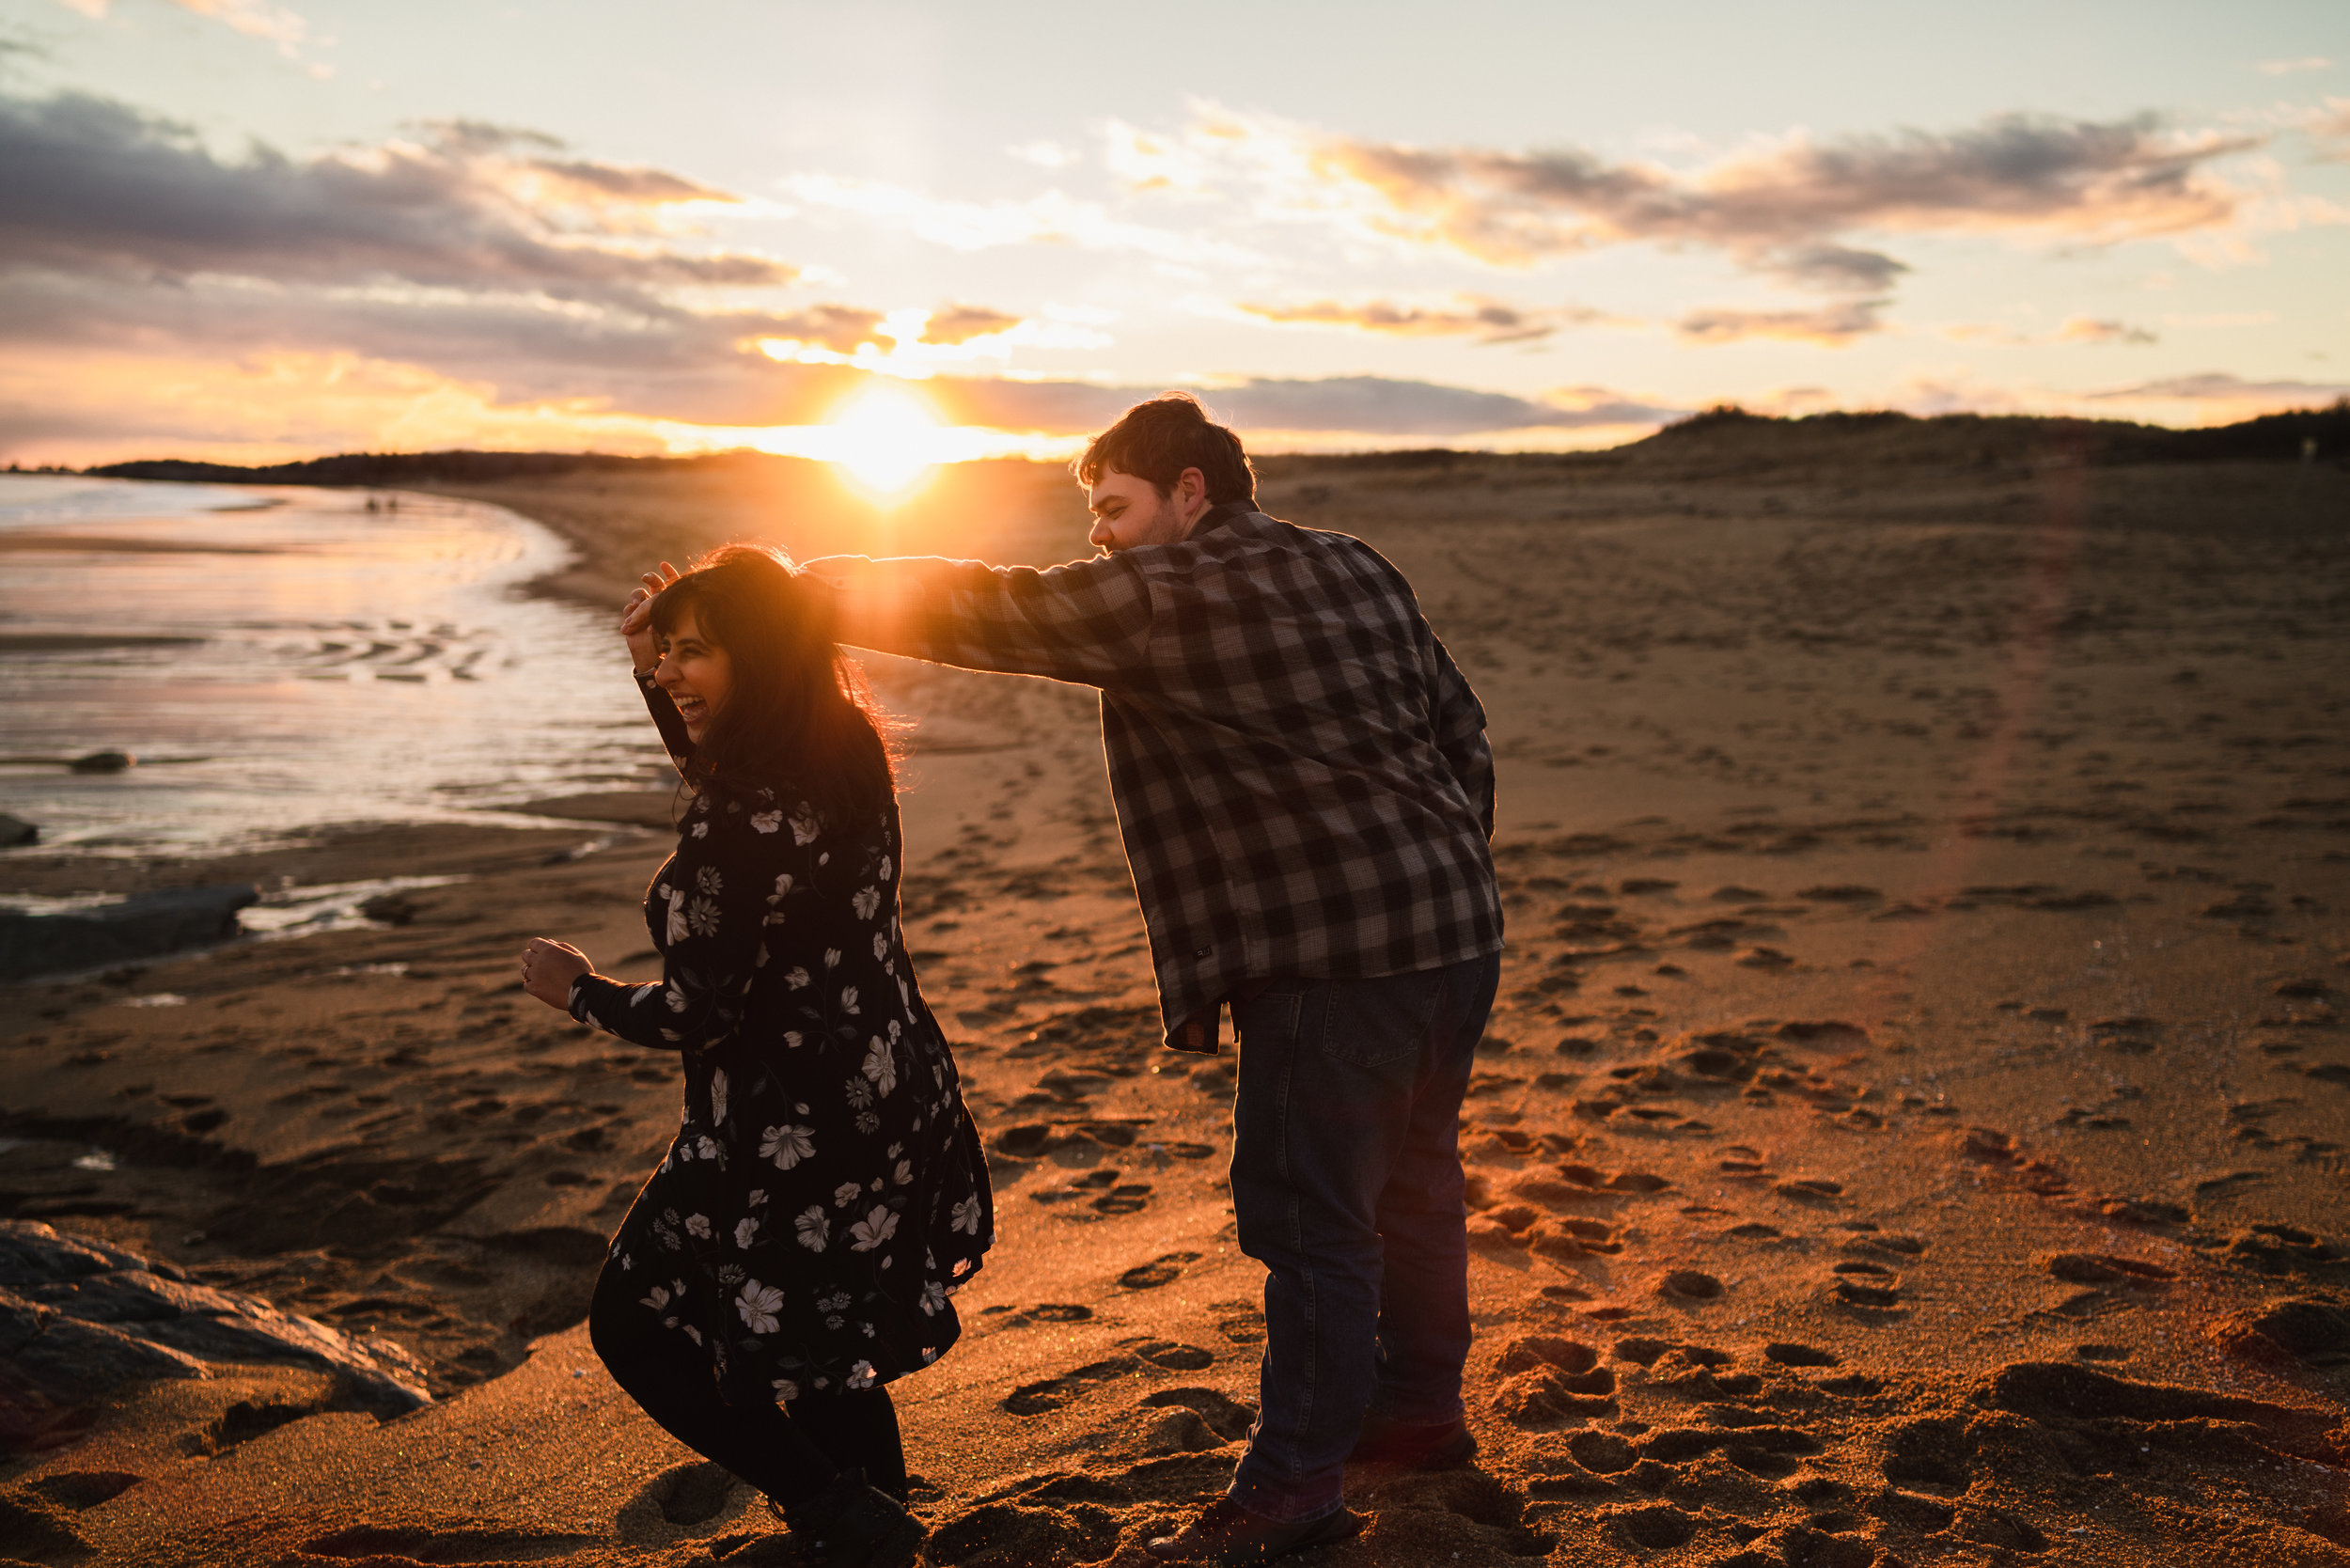 reid state park maine sunset ocean engagement session 7